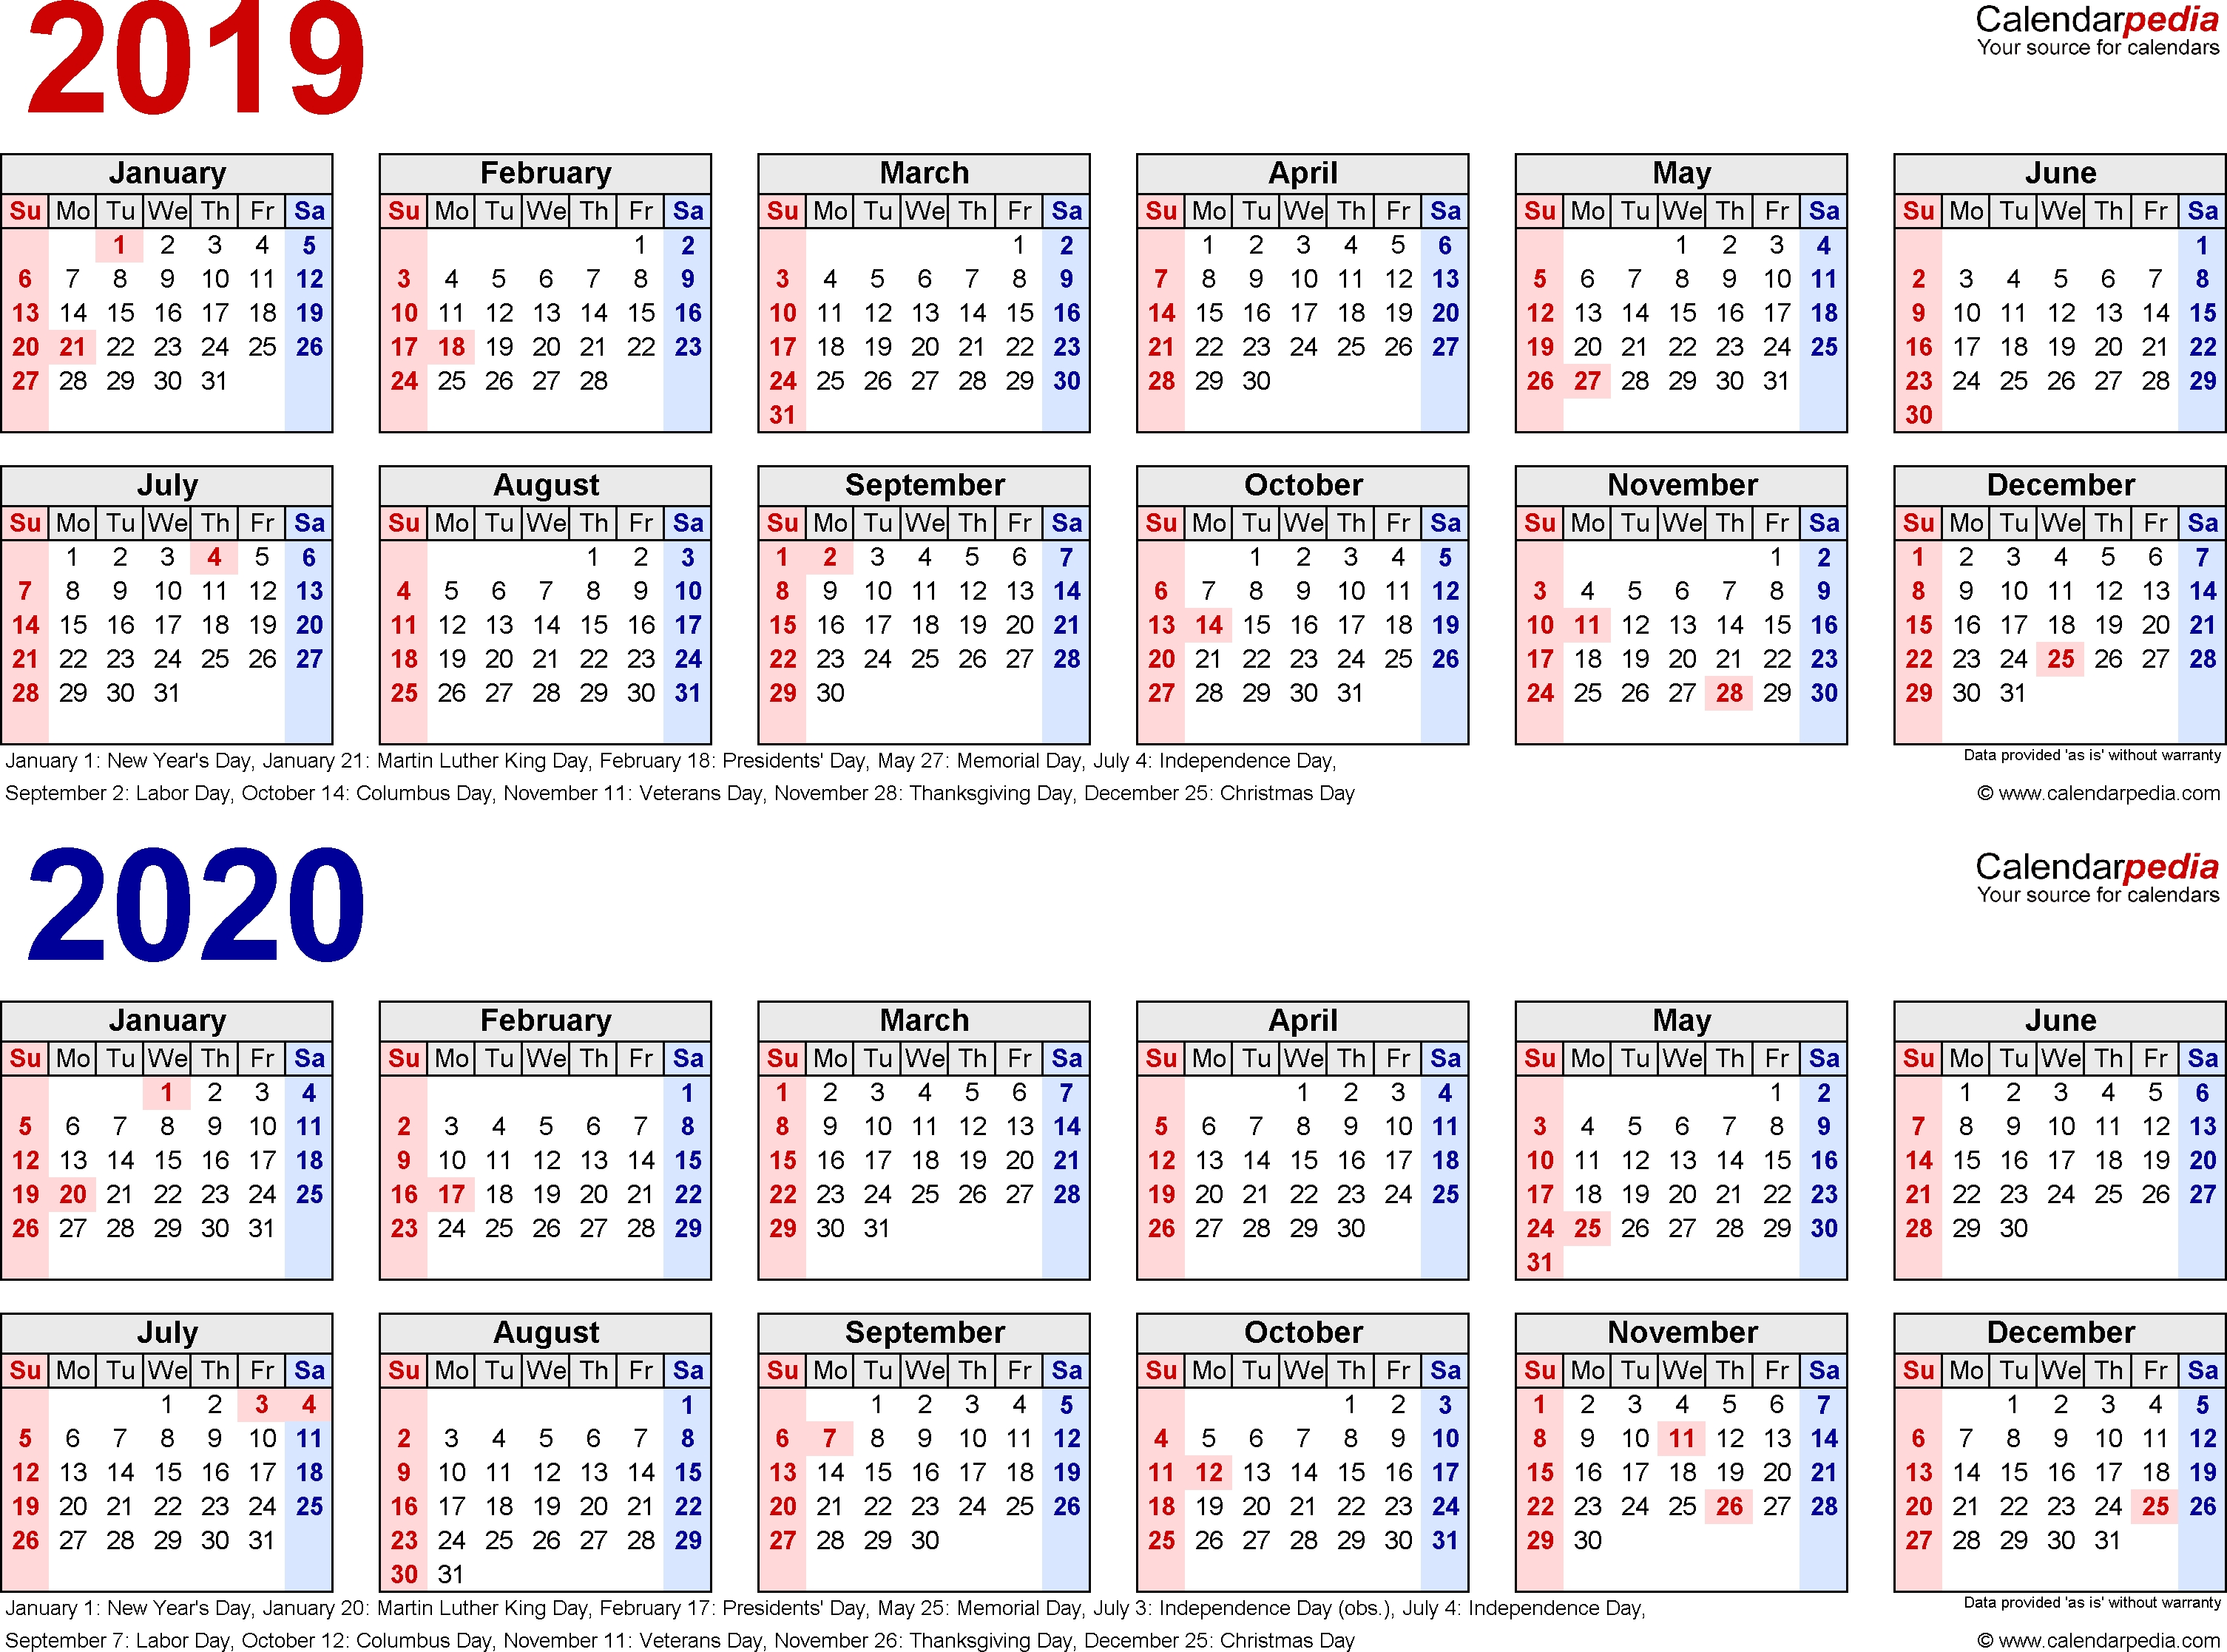 2019-2020 Two Year Calendar - Free Printable Microsoft Word with regard to Free Printable Pocket Size Calendars 2019-2020